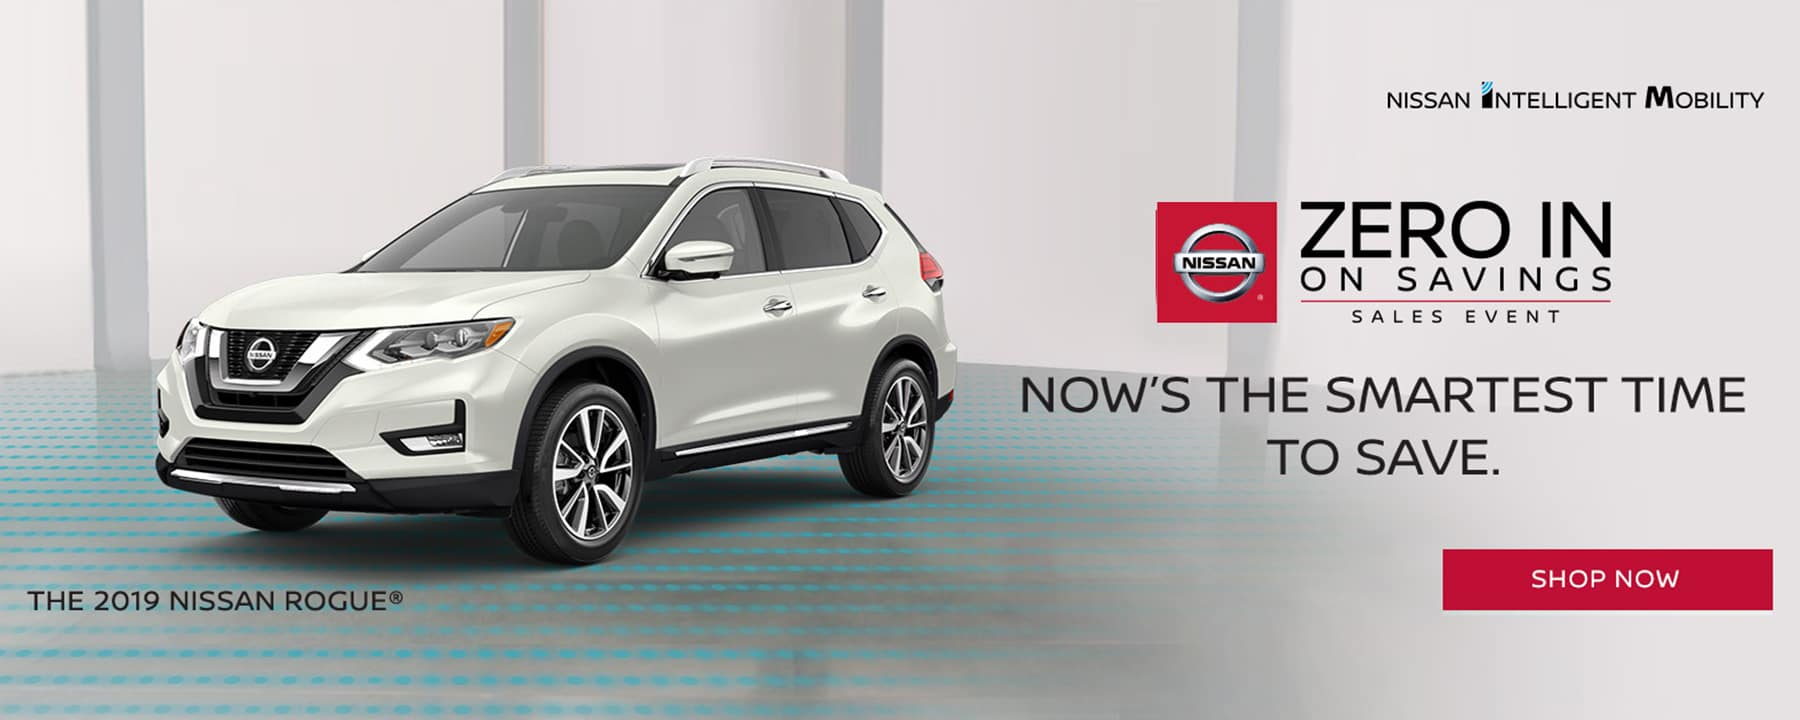 Zero in on Savings with a 2019 Nissan Rogue at Star Nissan!